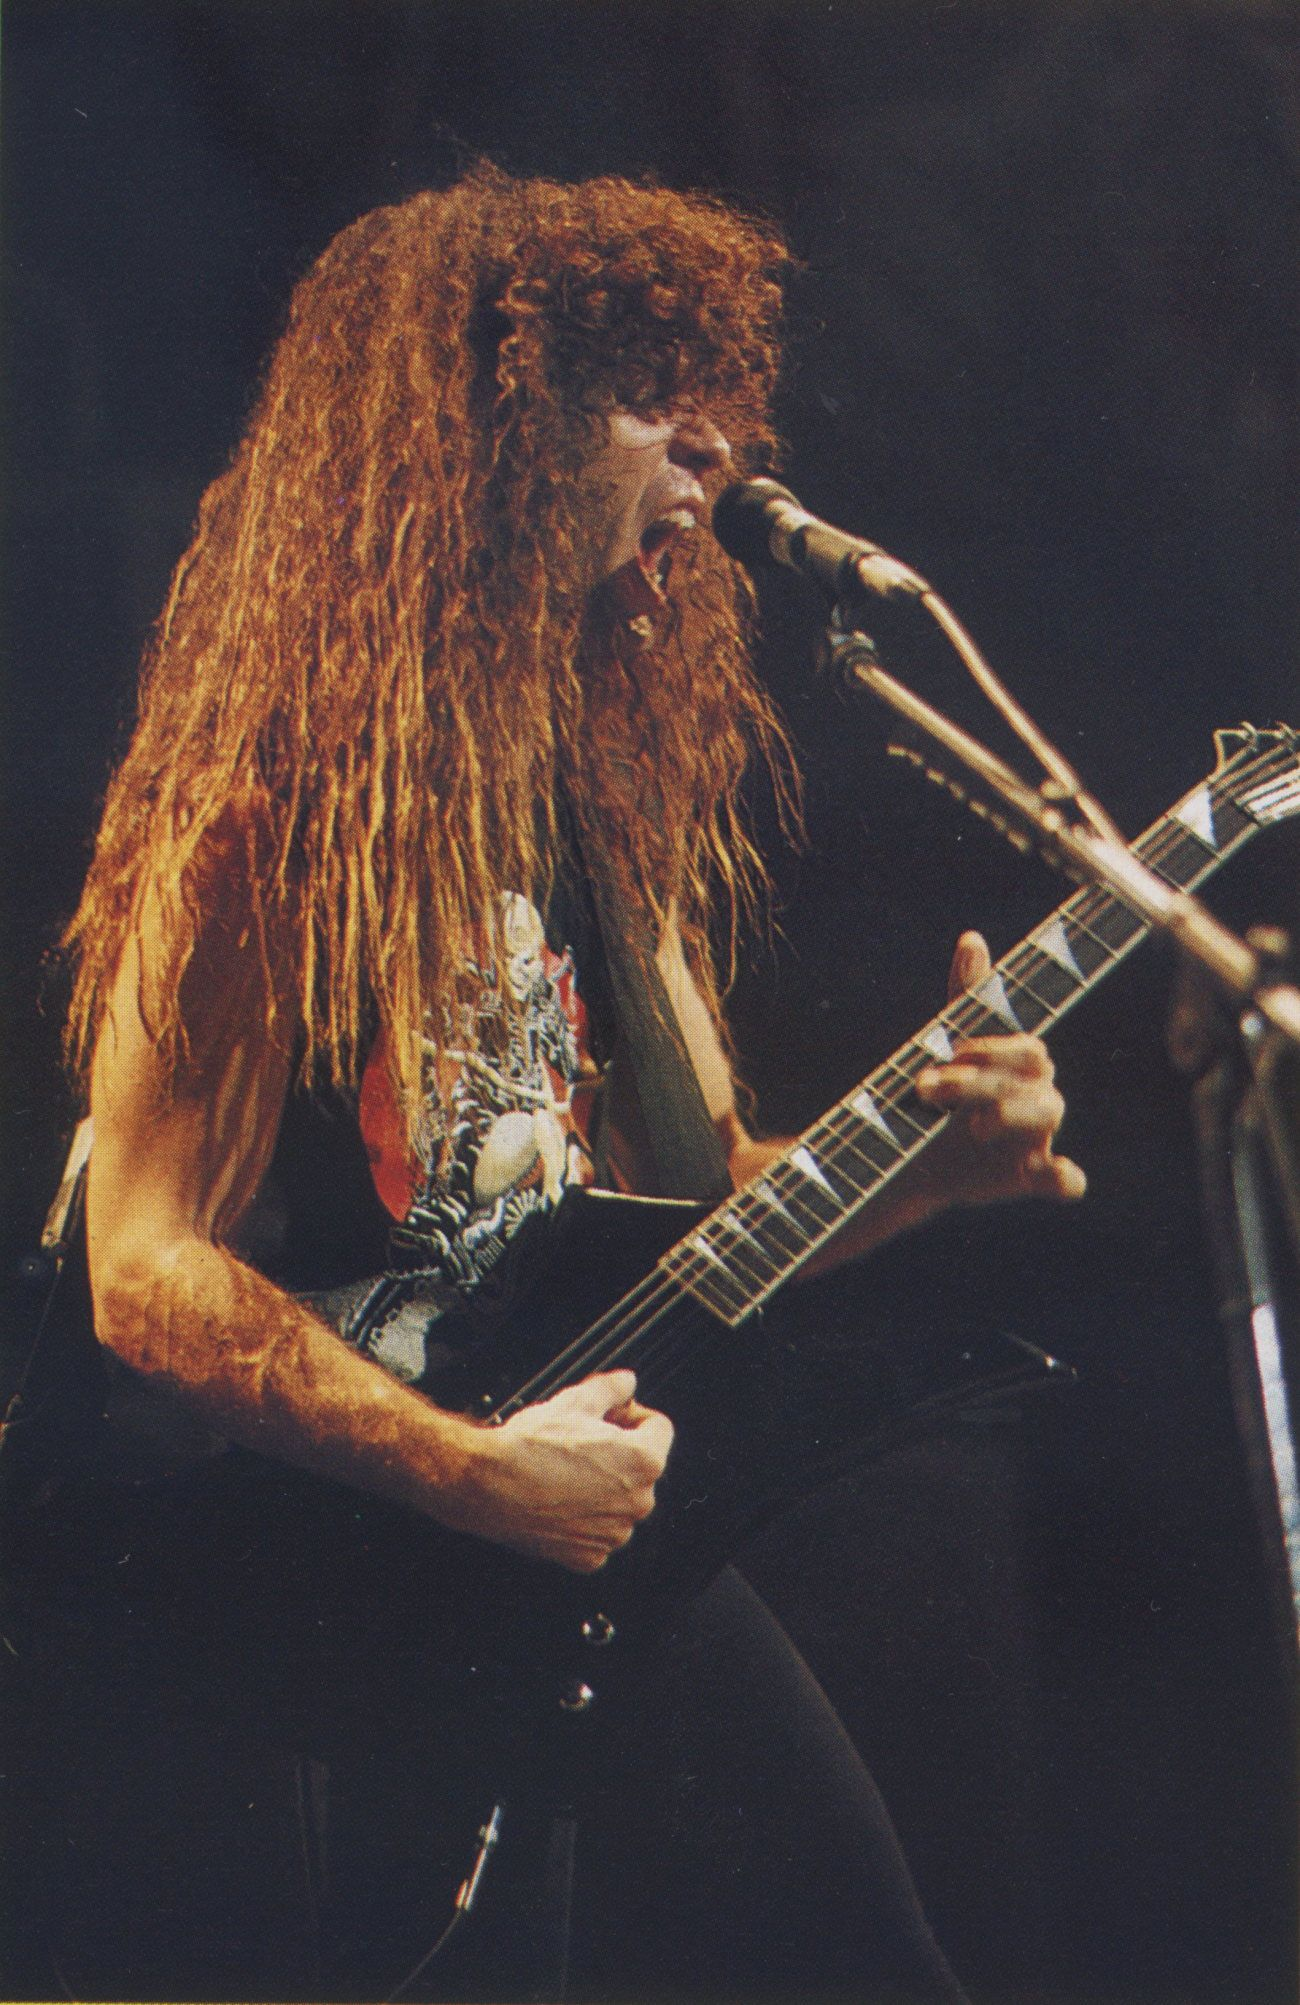 marty friedman 39 s 1985 san dimas jackson cacophony 39 kelly 2 39 guitar heavy metal music. Black Bedroom Furniture Sets. Home Design Ideas